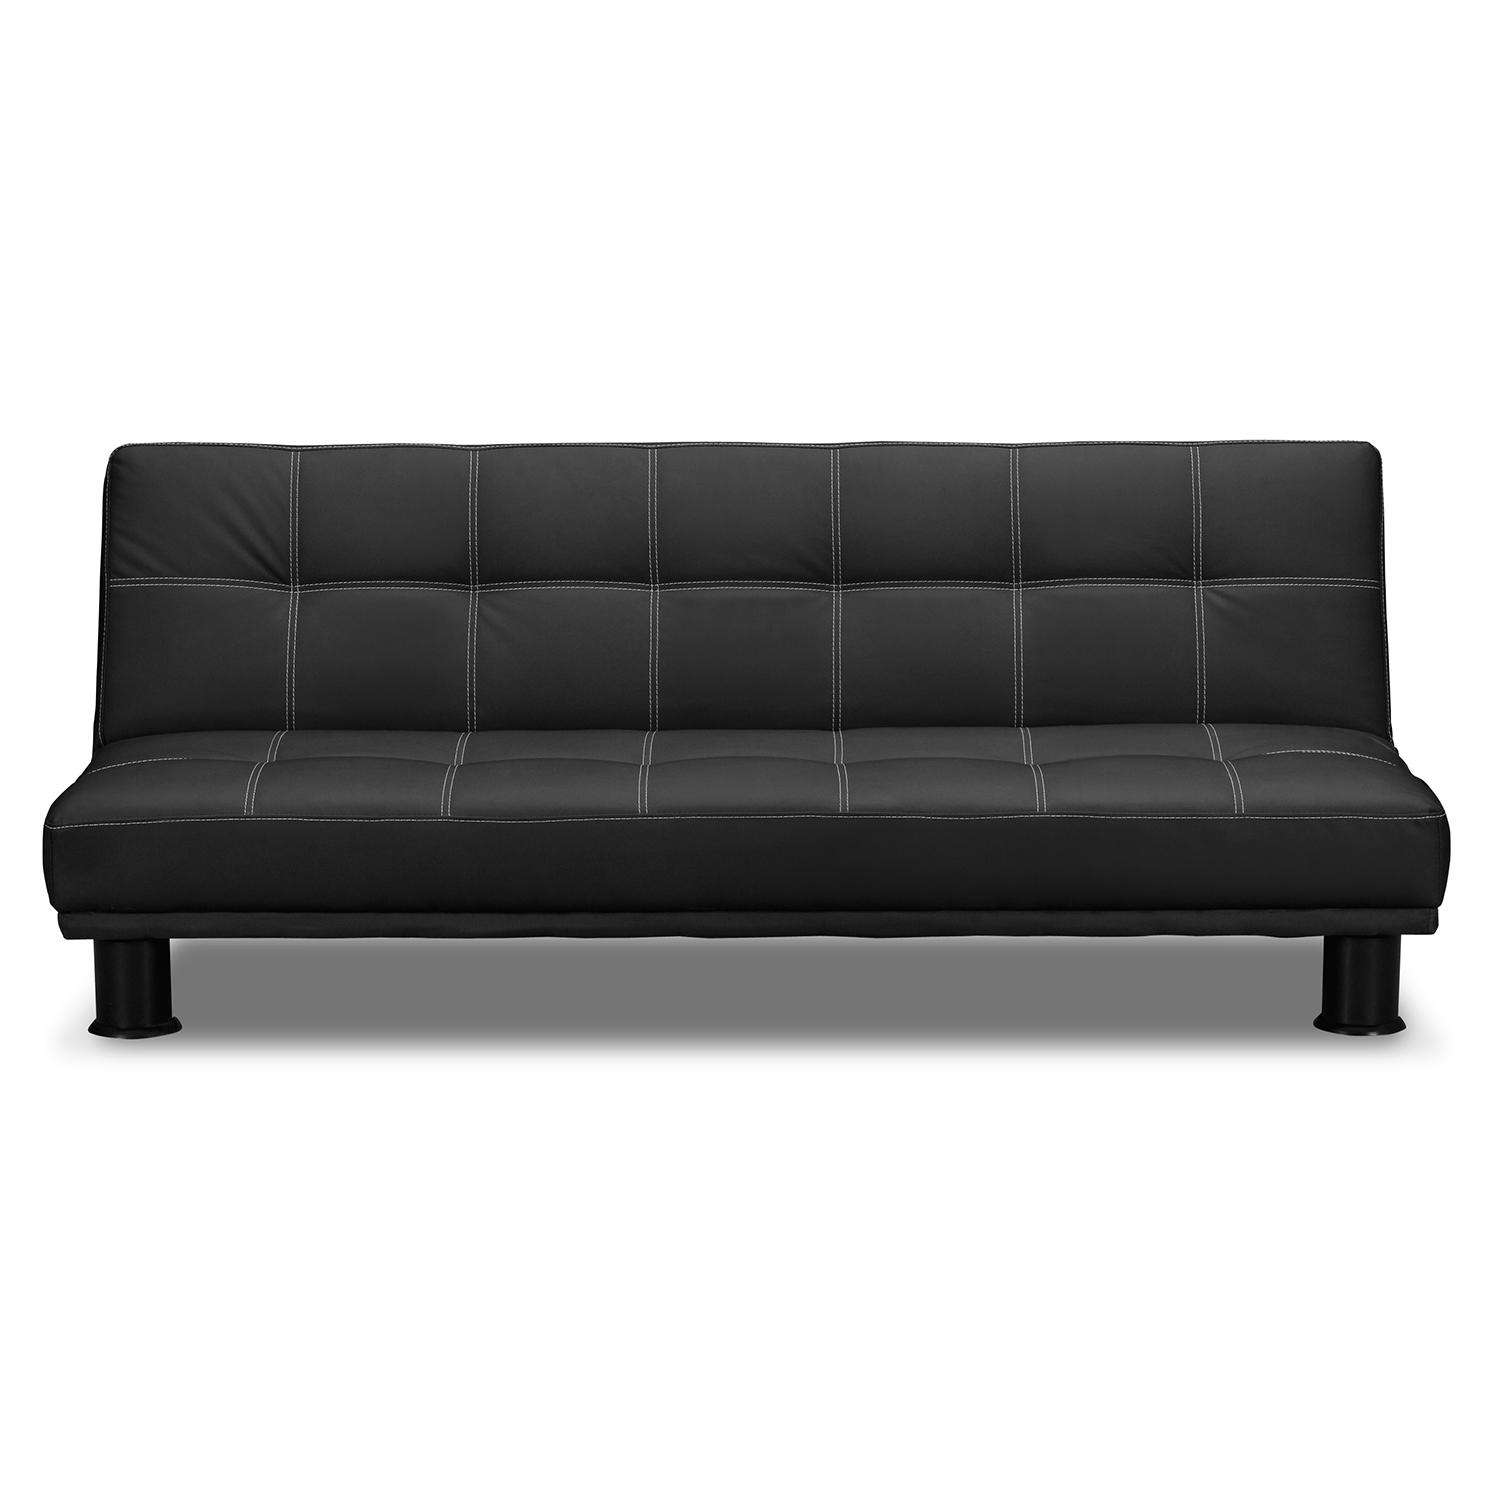 Fabulous Black Leather Futon Sofa Bed Futons Living Room Seating Inside City Sofa Beds (View 12 of 20)